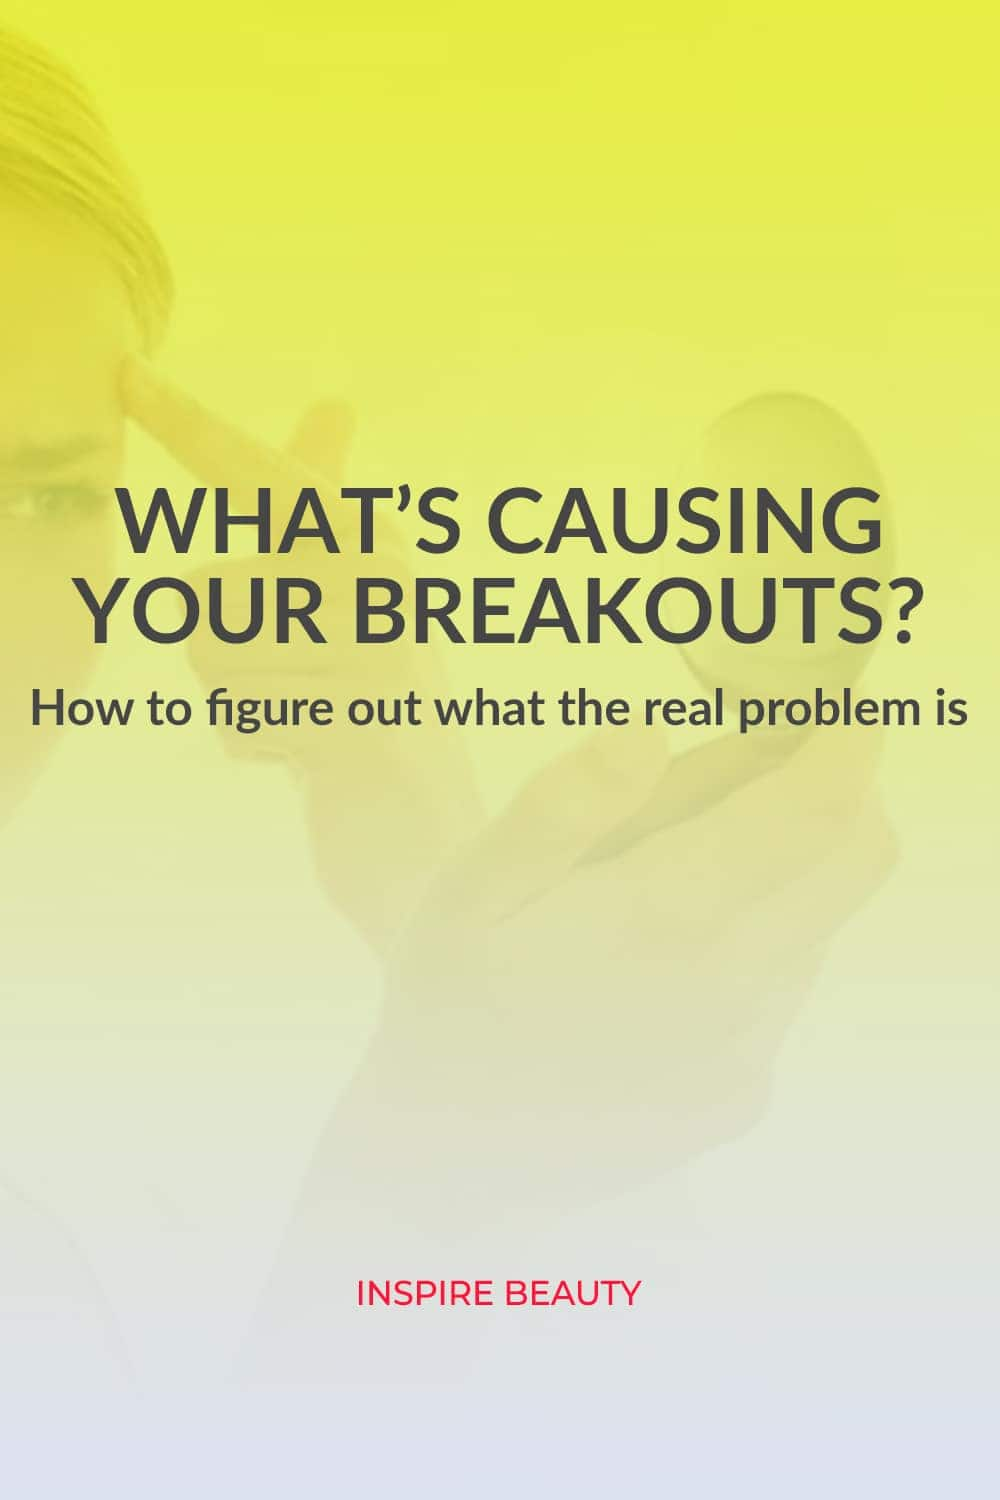 How to figure out what's causing your acne and breakouts.